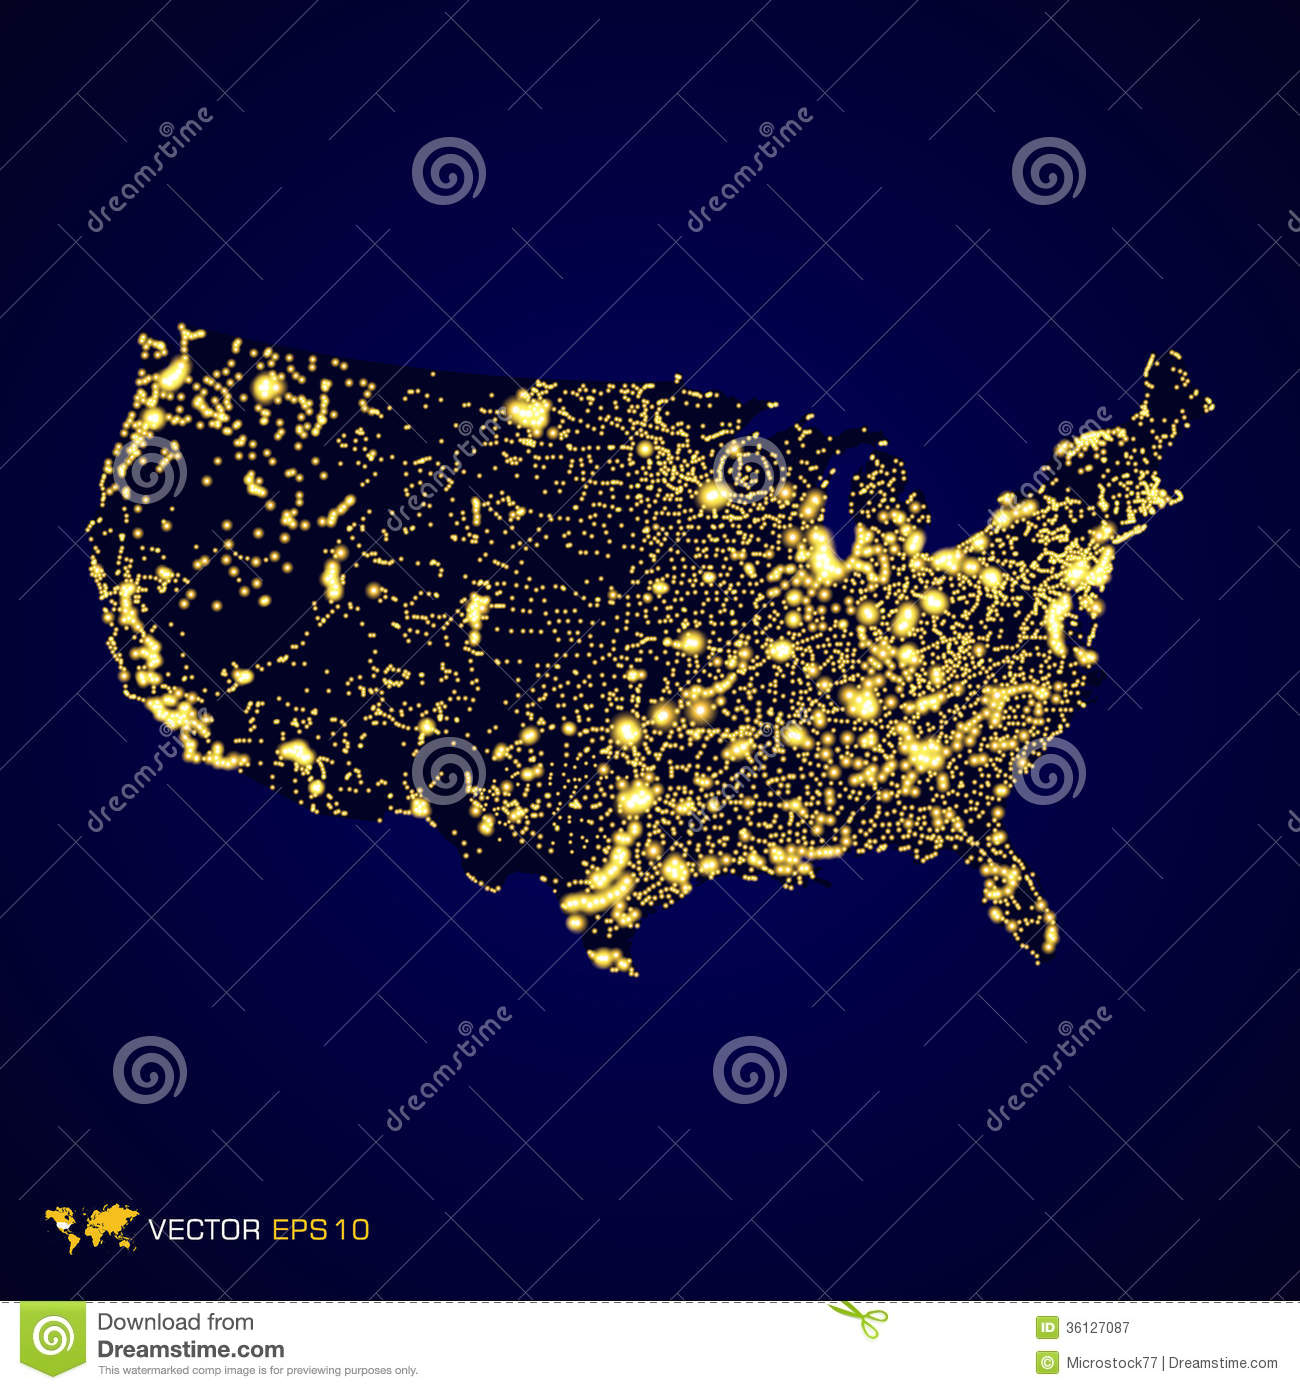 Usa map night stock vector. Illustration of isolated - 36127087